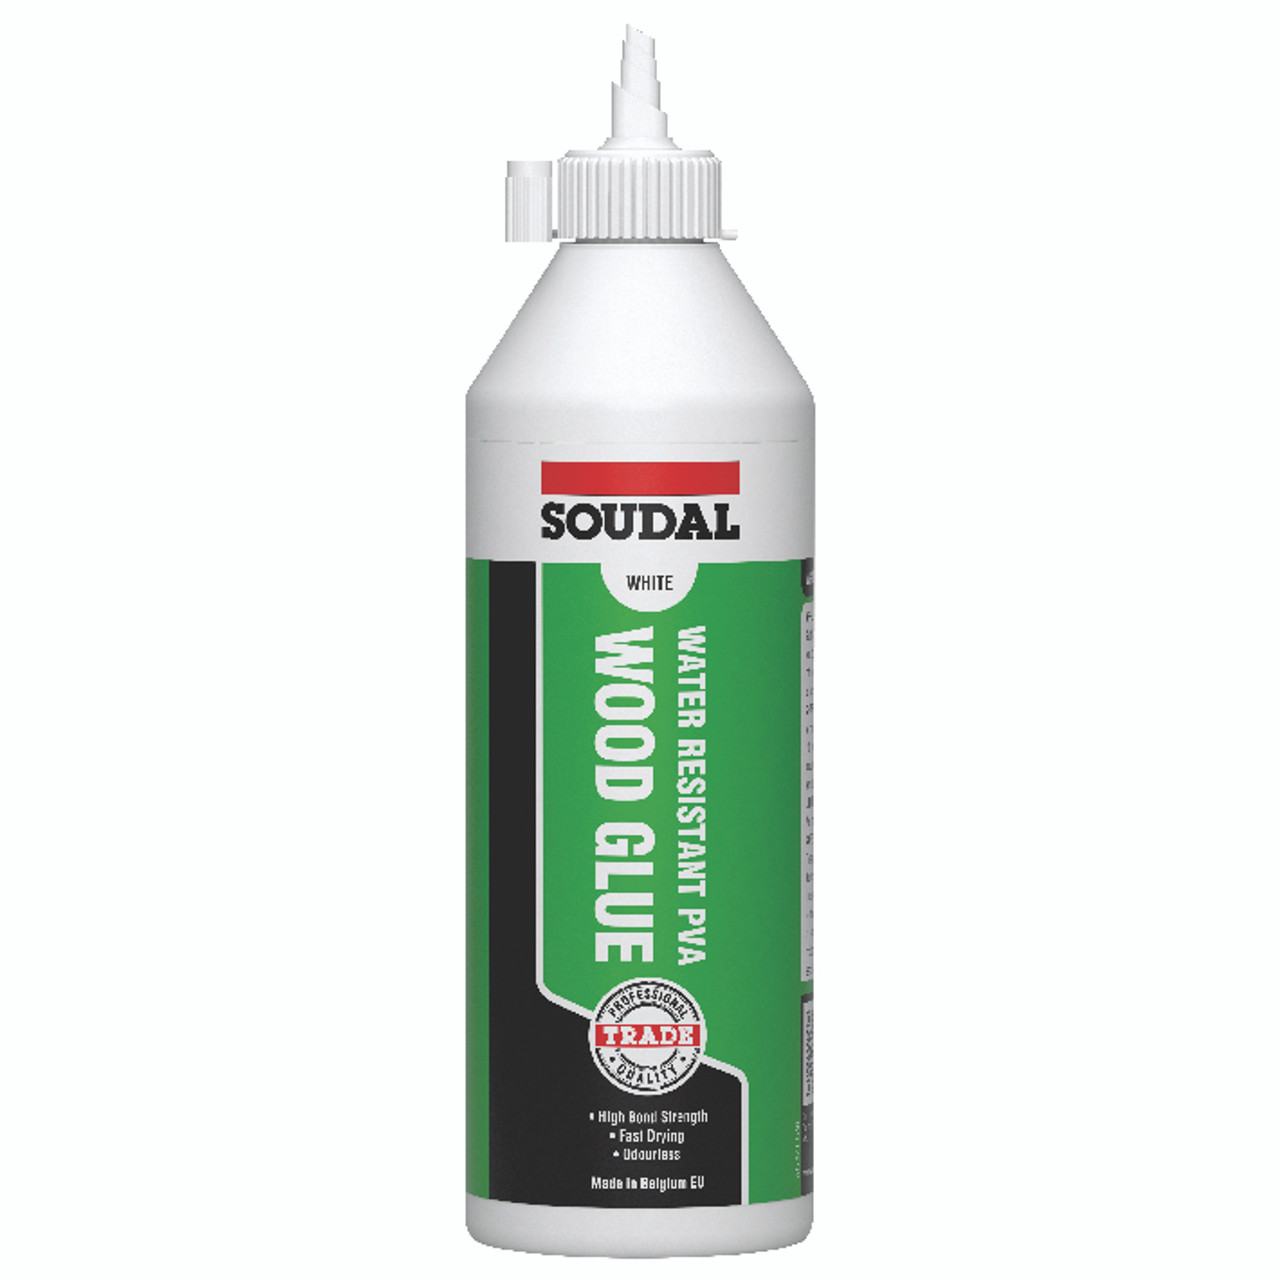 WATER RESISTANT PVA WOOD GLUE